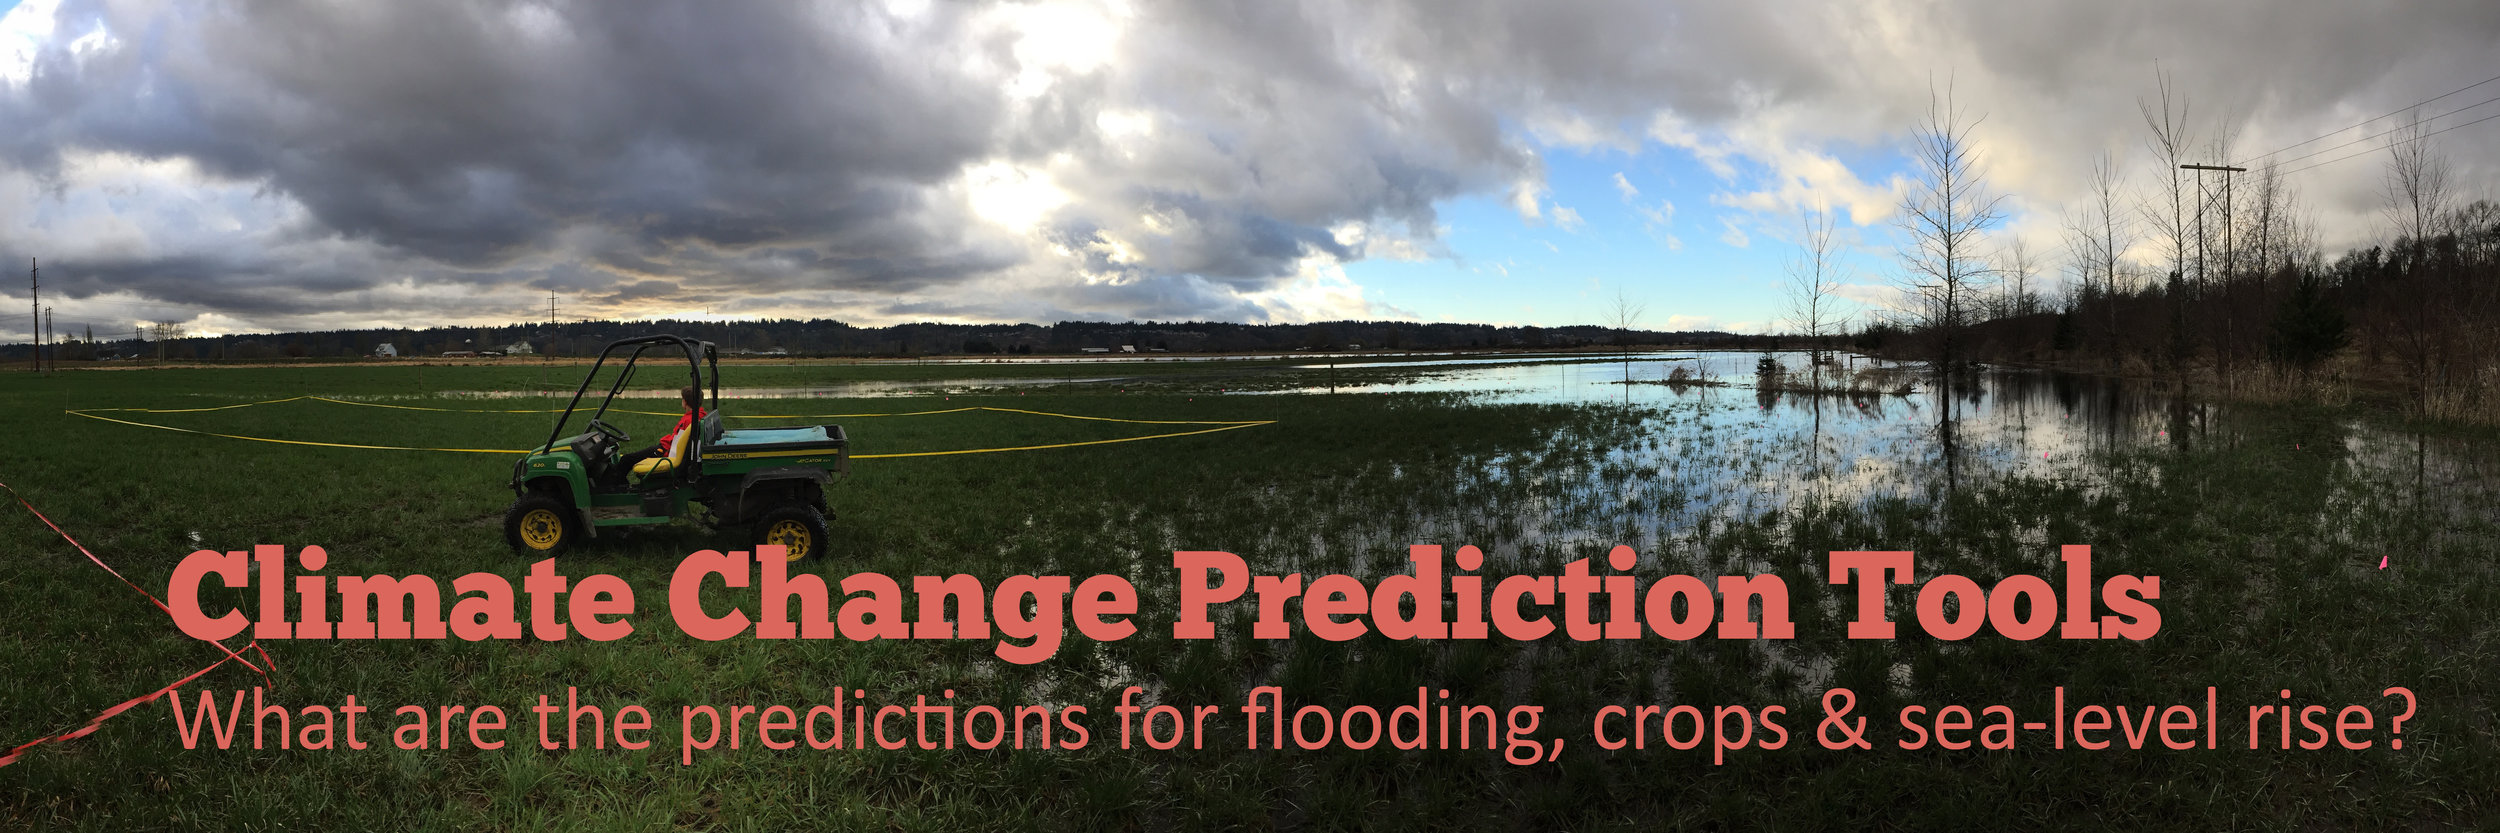 Image: Flooded field. Text: Climate Change Prediction Tools. Link to prediction tools page.